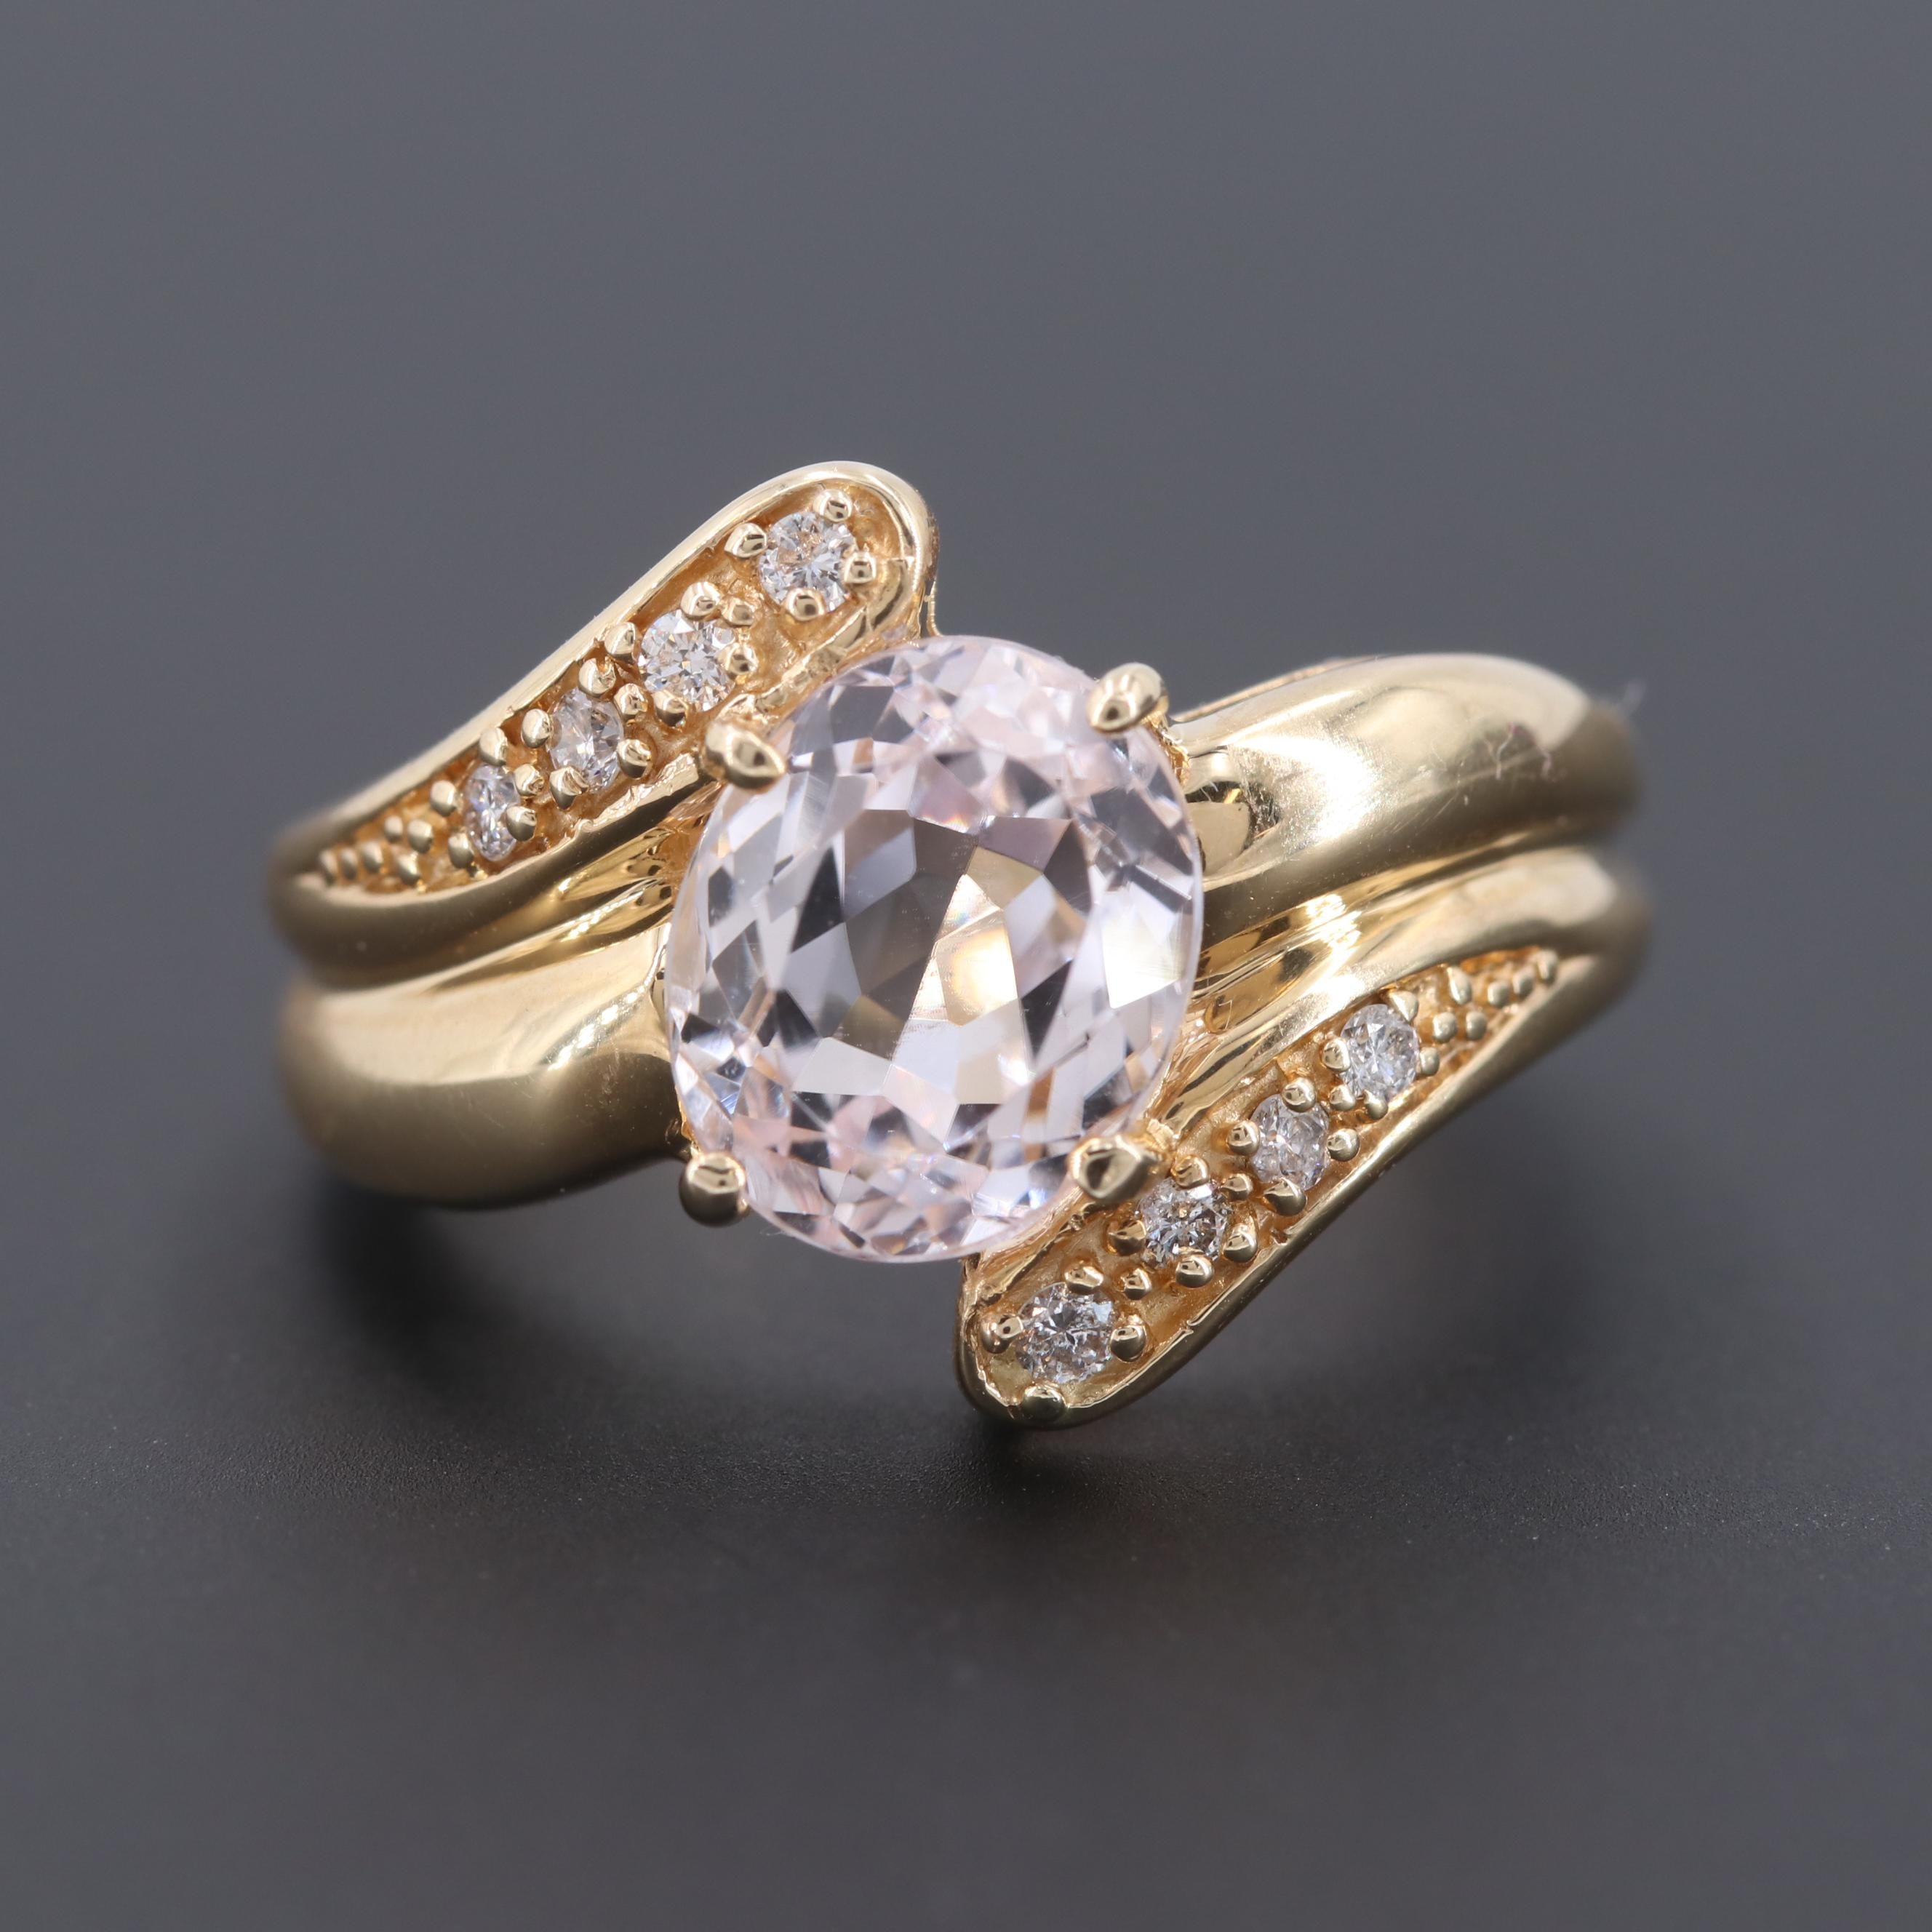 Sonia Bitton 14K Yellow Gold Kunzite and Diamond Ring